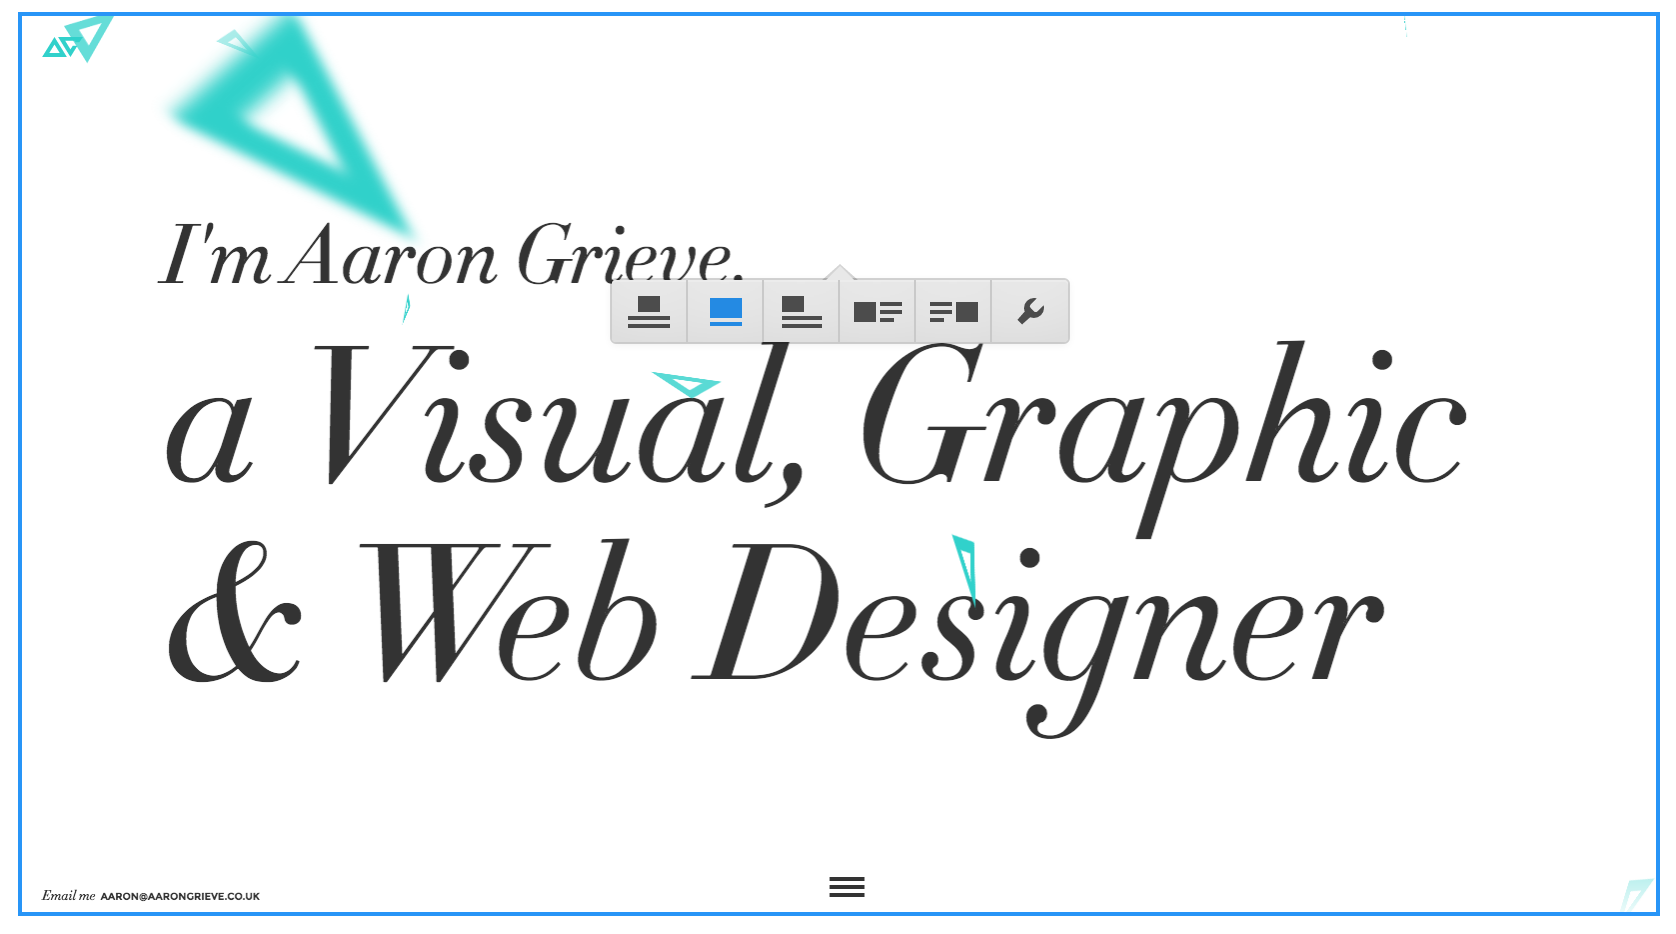 Image options in the Webflow Editor